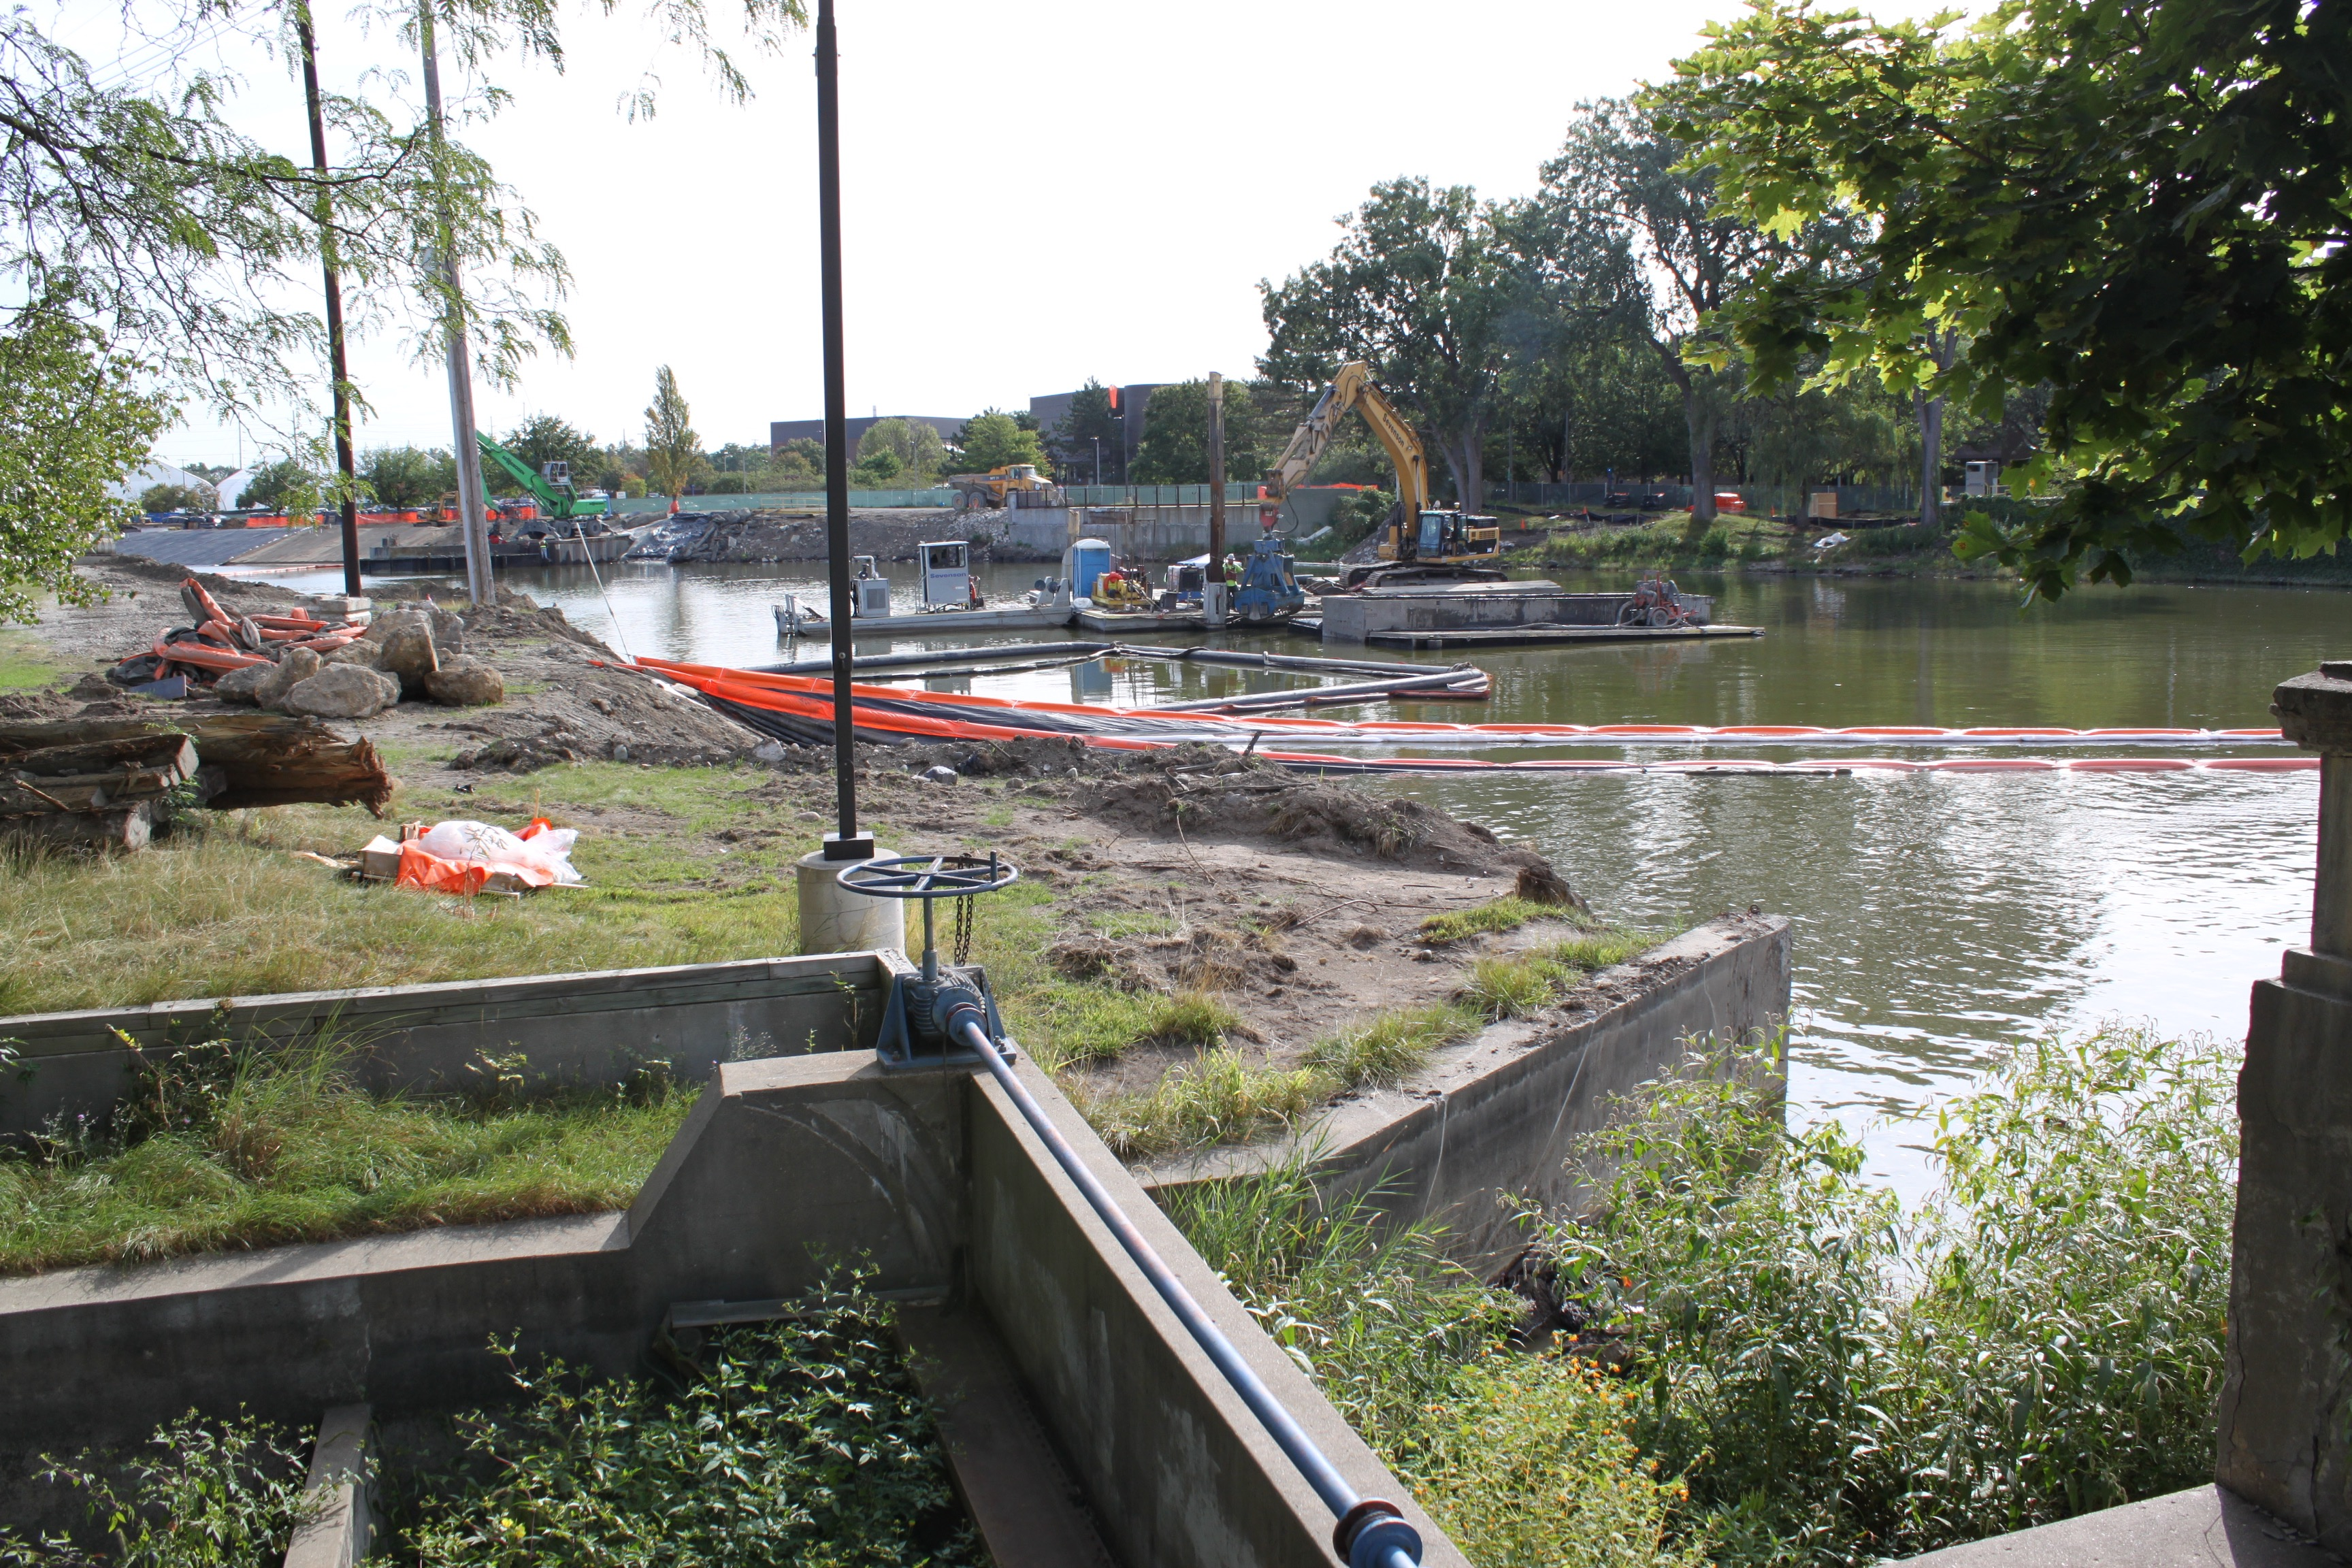 The Consumers Energy remediation project along the Flint River